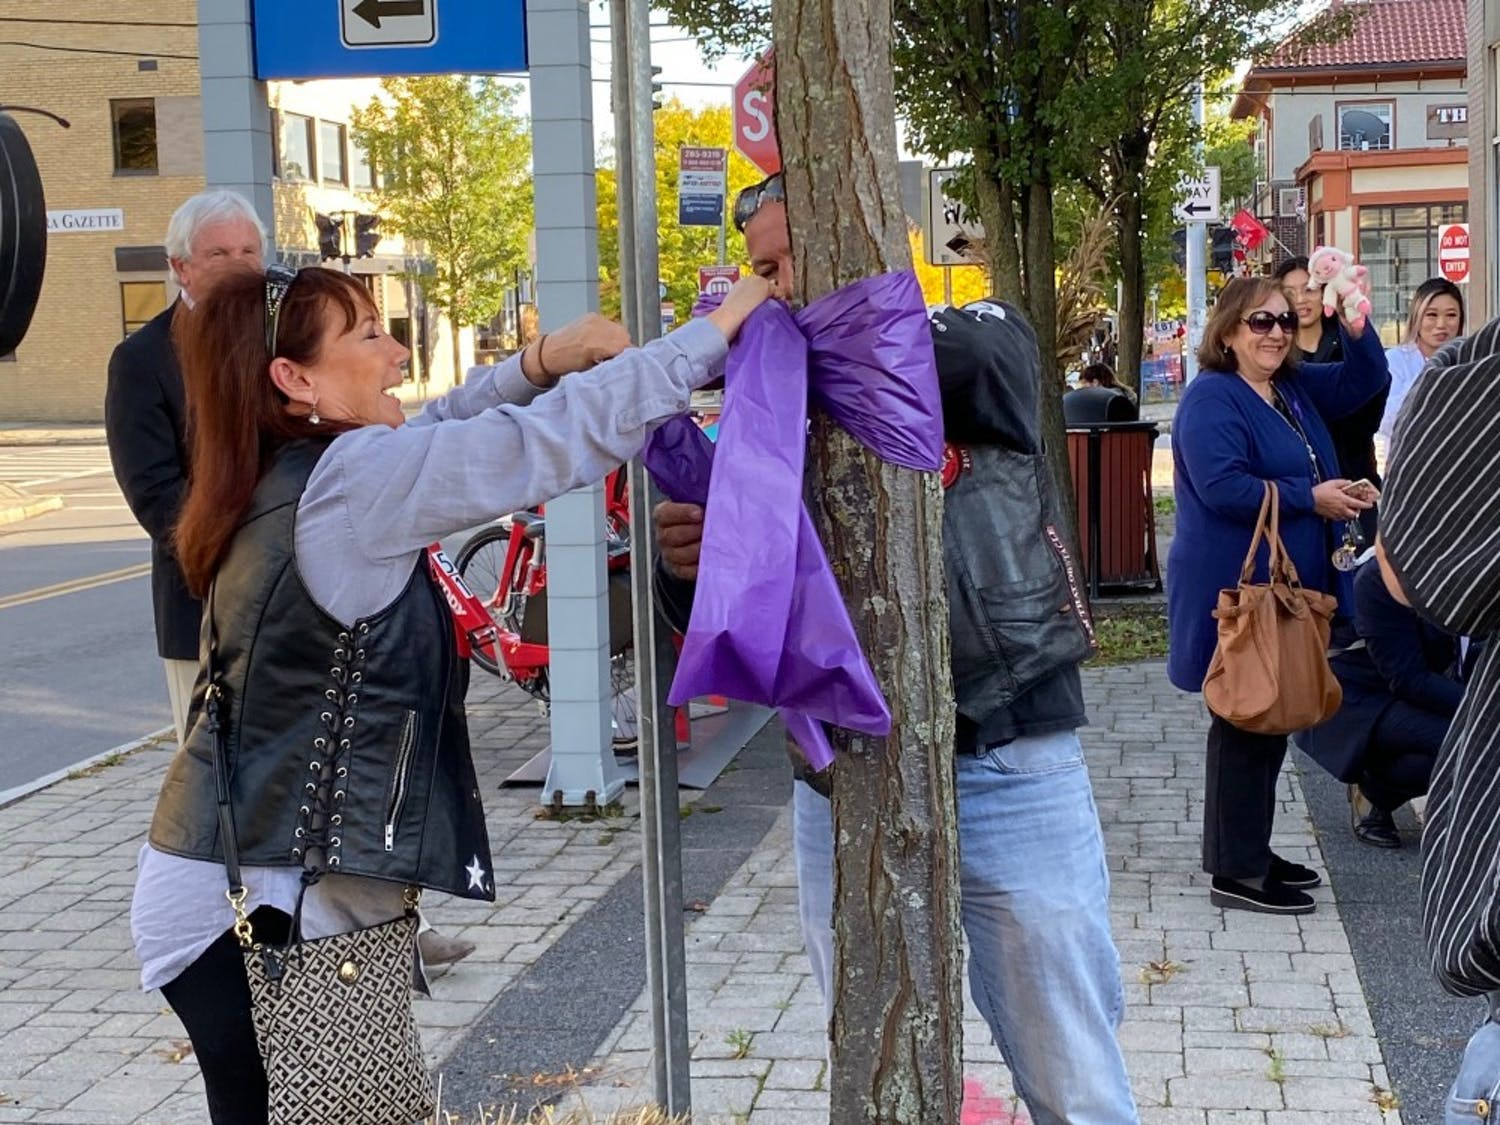 Buffalo community members tied purple ribbons to show resilience for domestic abuse survivors.